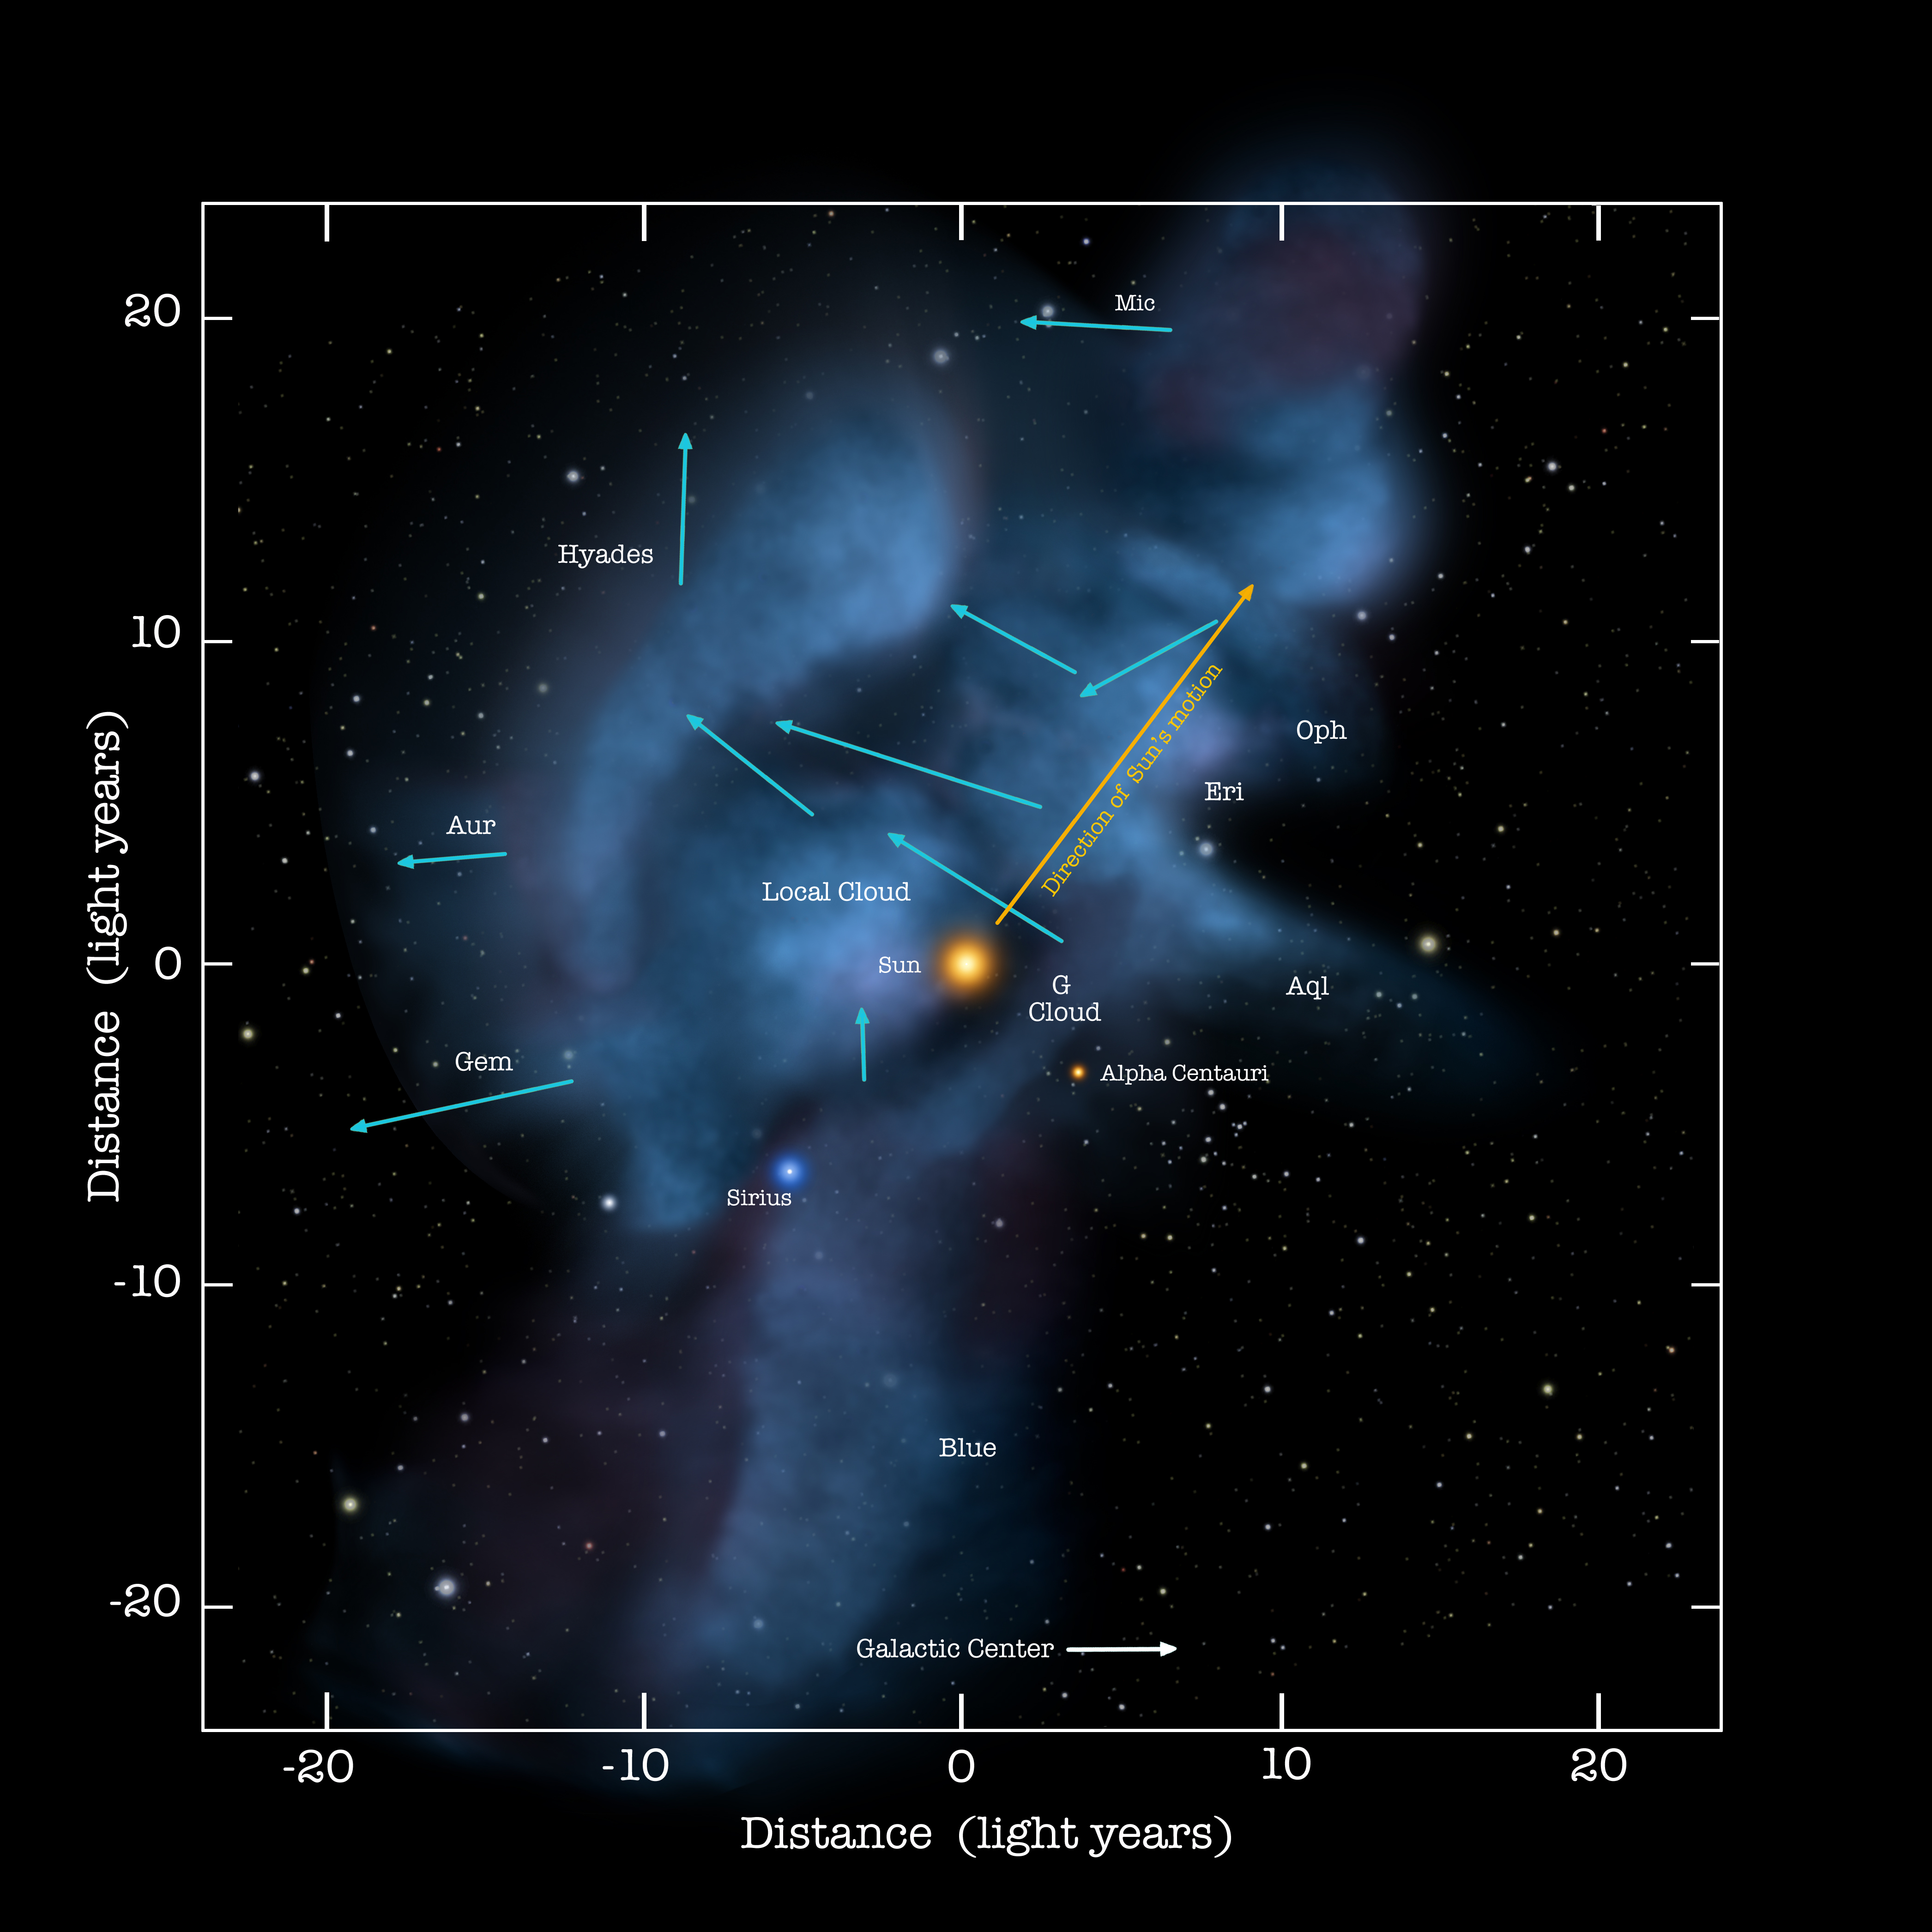 Gms Ibex Provides First View Of The Solar Systems Tail Universe Today System Diagram 4184x4184 Jpeg 22 Mb